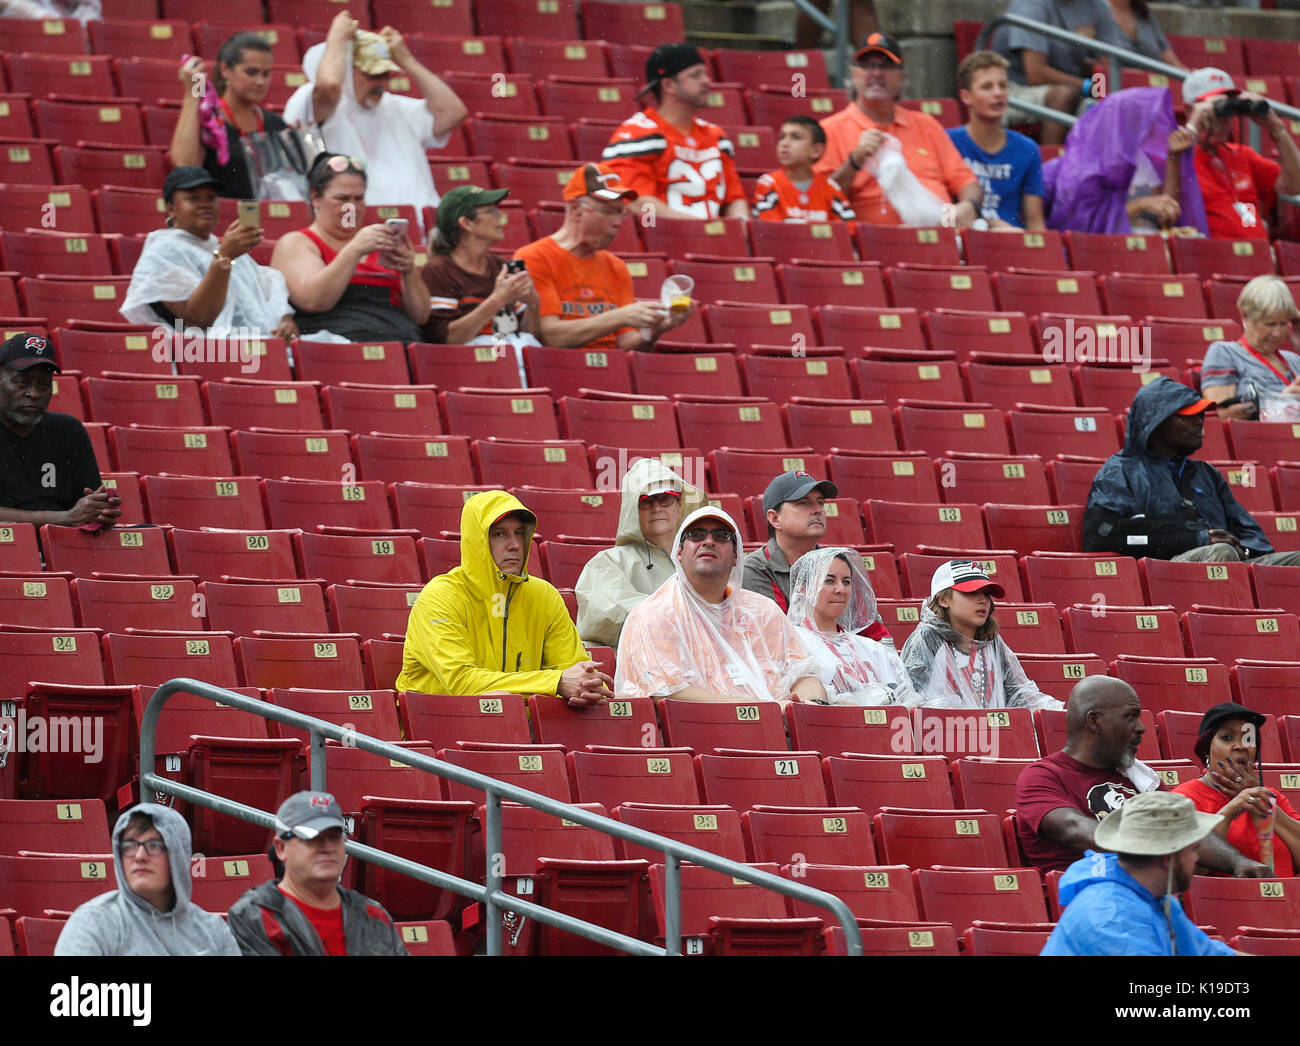 Tampa, Florida, USA. 26th Aug, 2017. MONICA HERNDON | Times.Fans sit in ponchos in the rain before the start of the Tampa Bay Buccaneers preseason game against the Cleveland Browns, at Raymond James Stadium in Tampa, Fla. Credit: Monica Herndon/Tampa Bay Times/ZUMA Wire/Alamy Live News - Stock Image